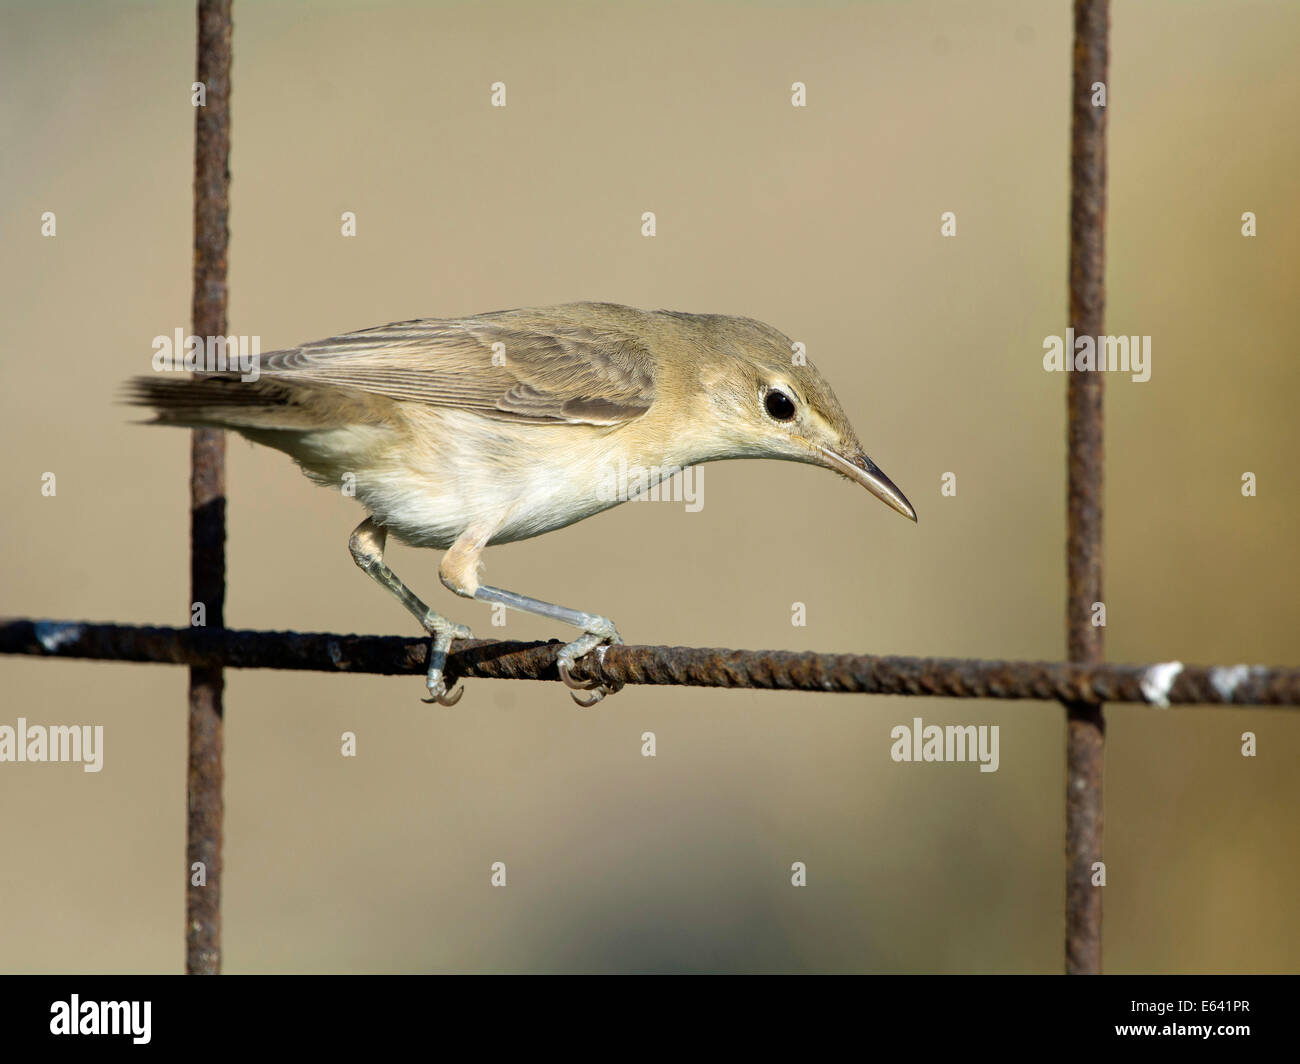 Olive-tree Warbler (Hippolais olivetorum) perched on a wire fence. Greece Stock Photo